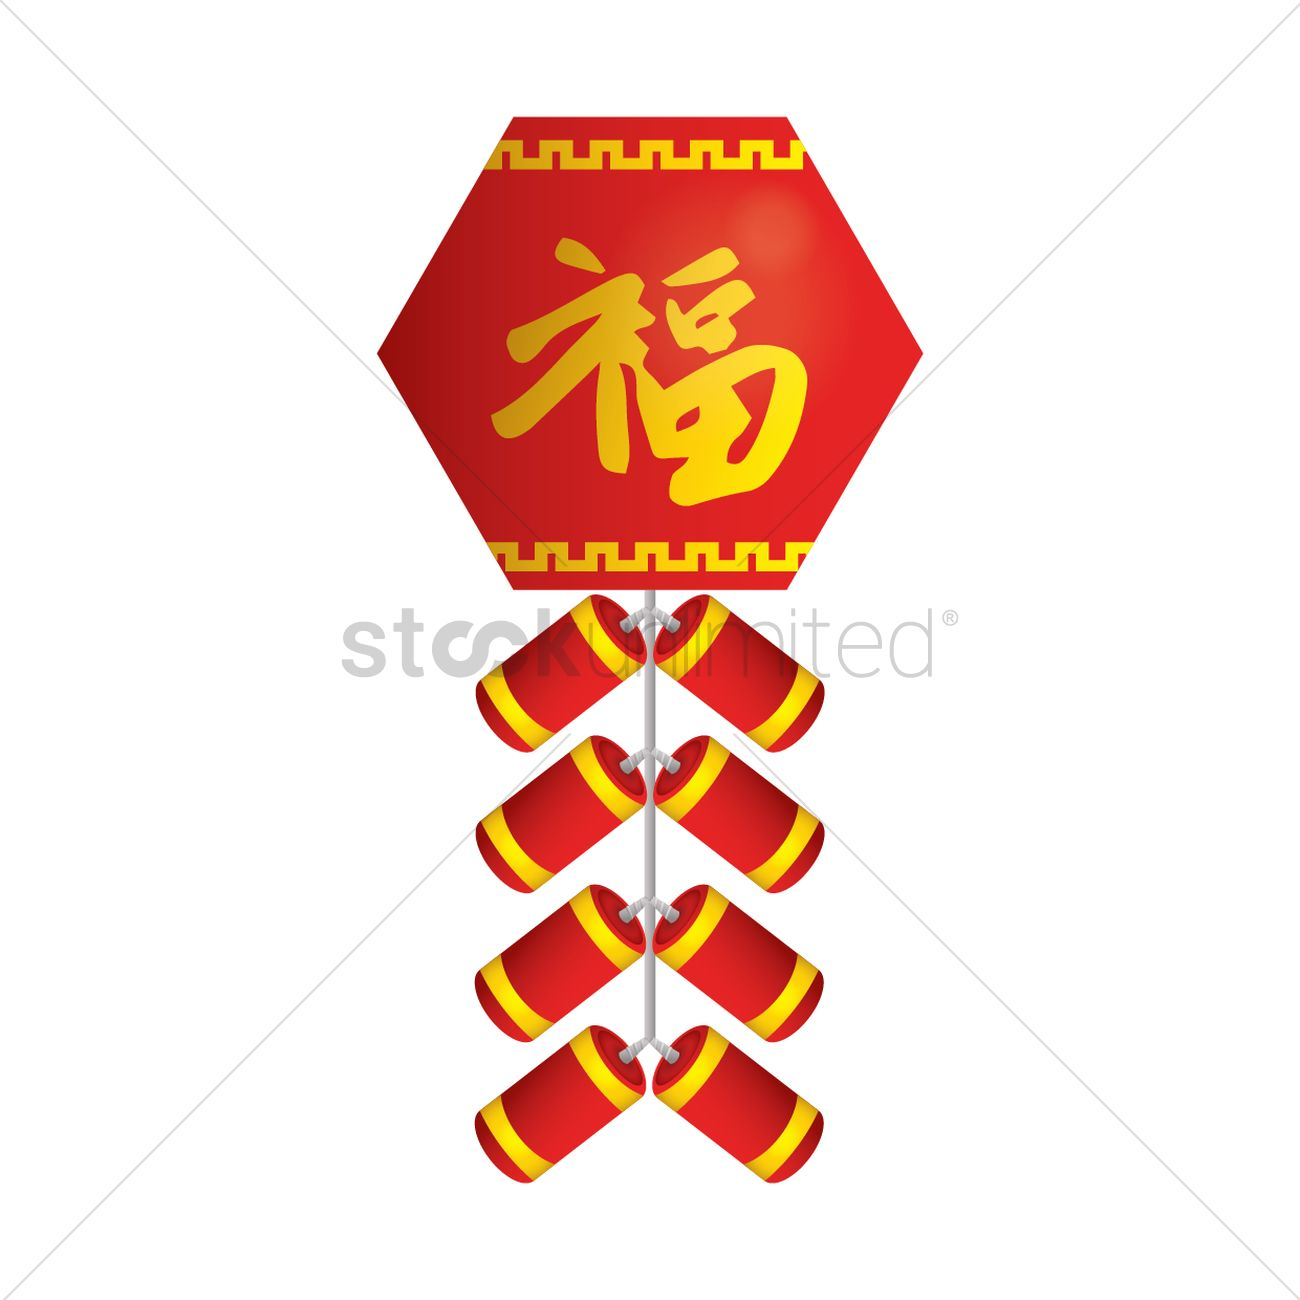 Chinese firecrackers Vector Image - 1403459 | StockUnlimited